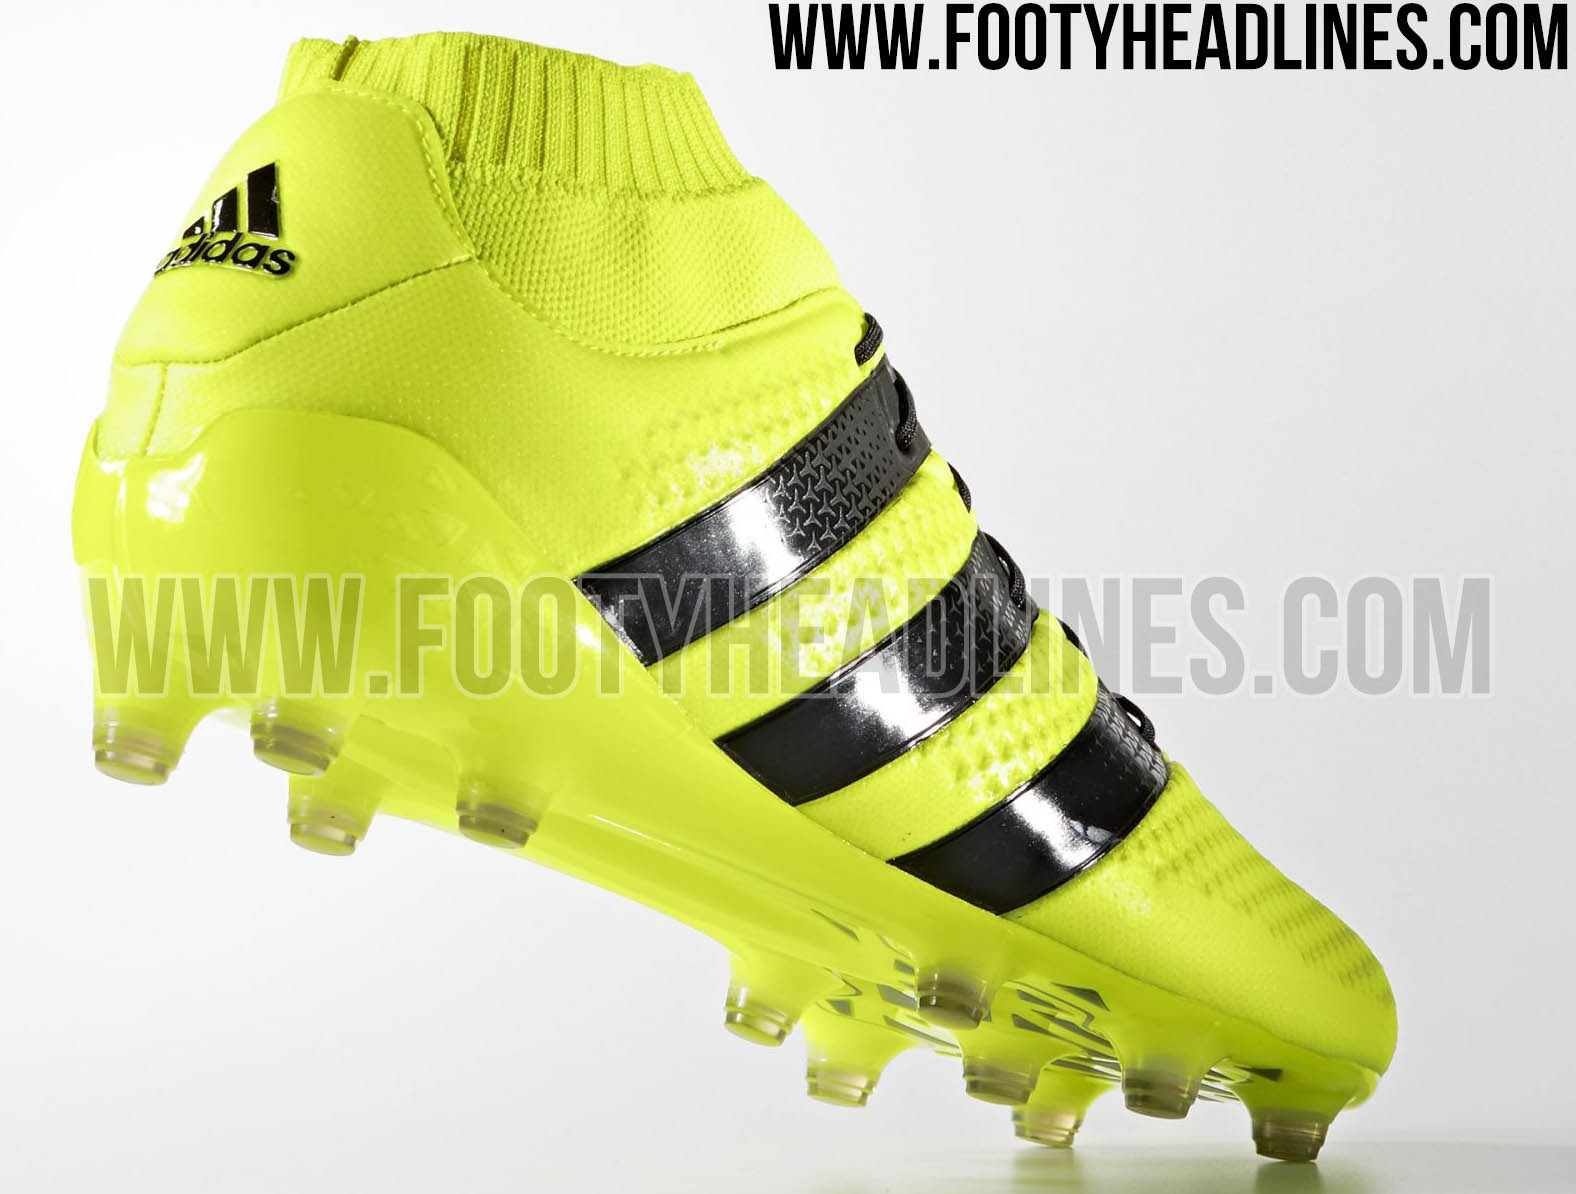 Adidas Ace 16.1 Primeknit Yellow